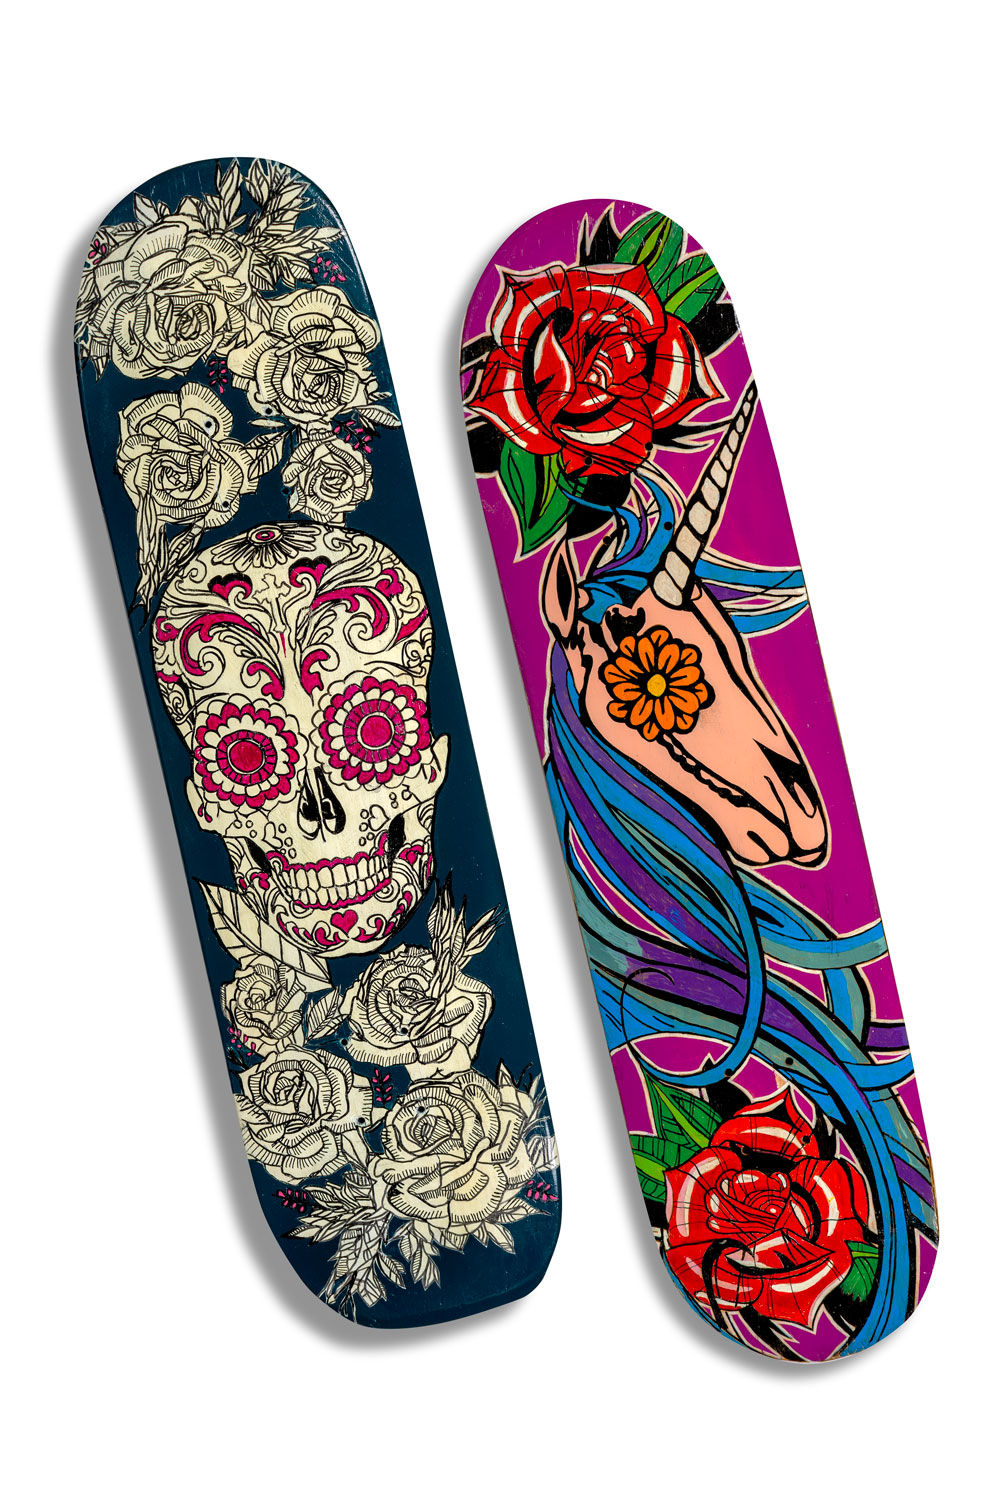 Calaveras Series By Nicolas Simon 7